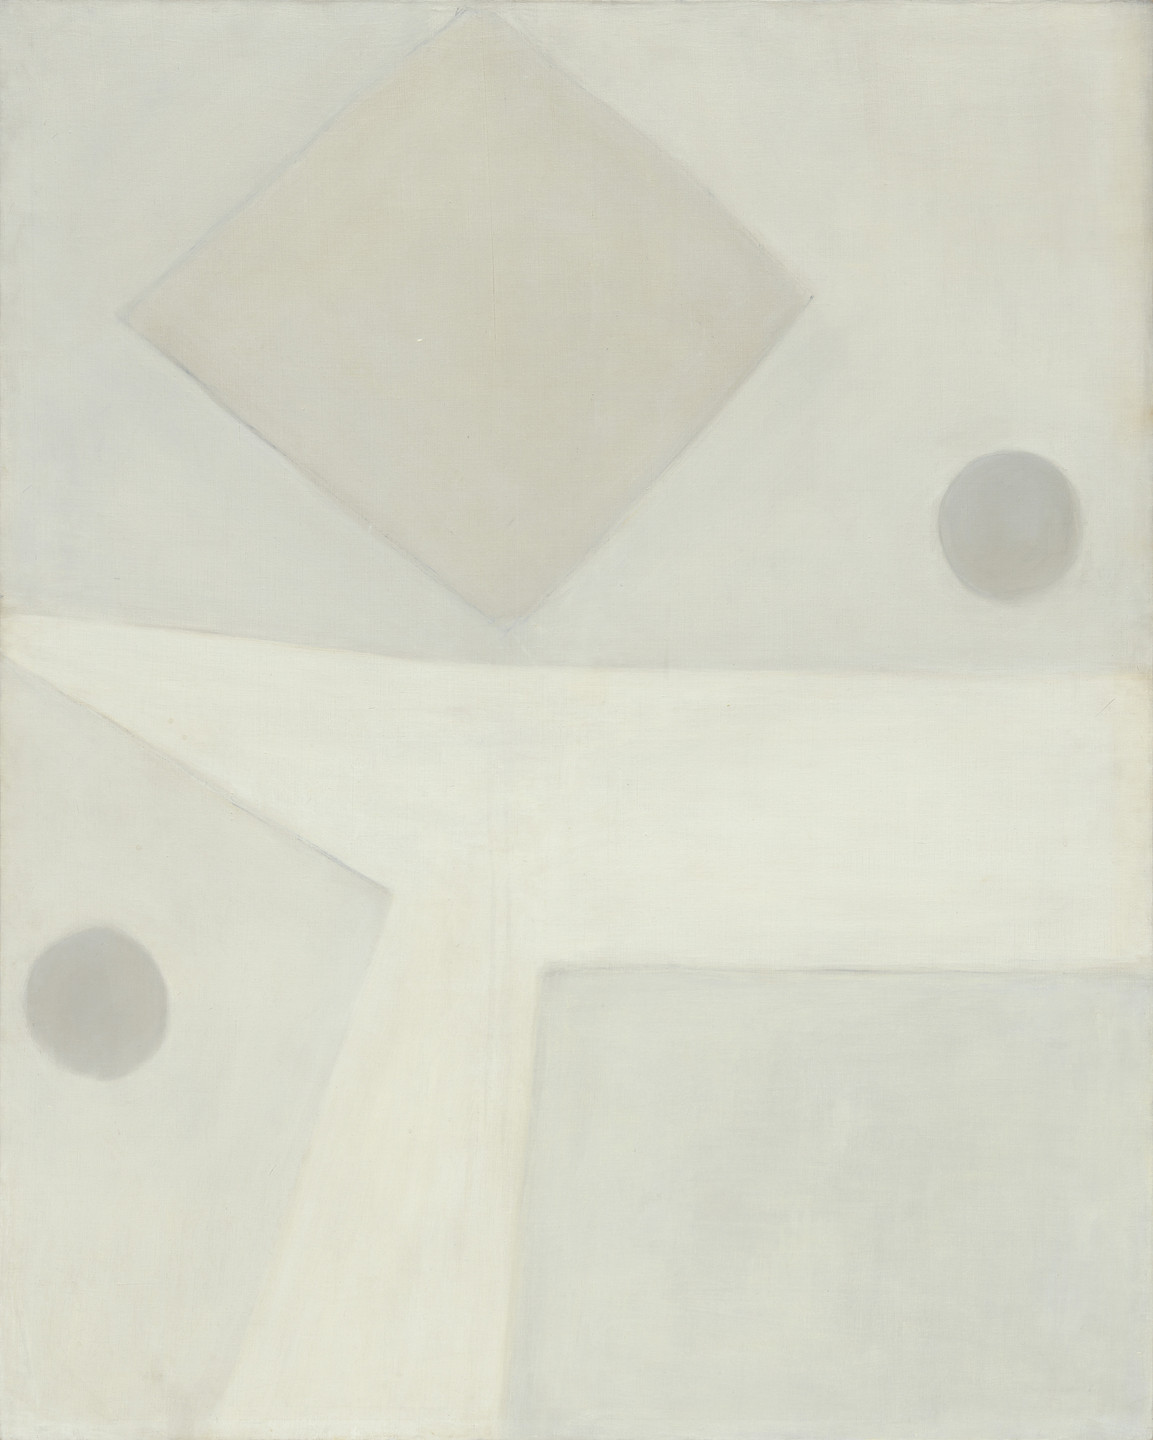 Agnes Martin. Harbor Number 1. 1957